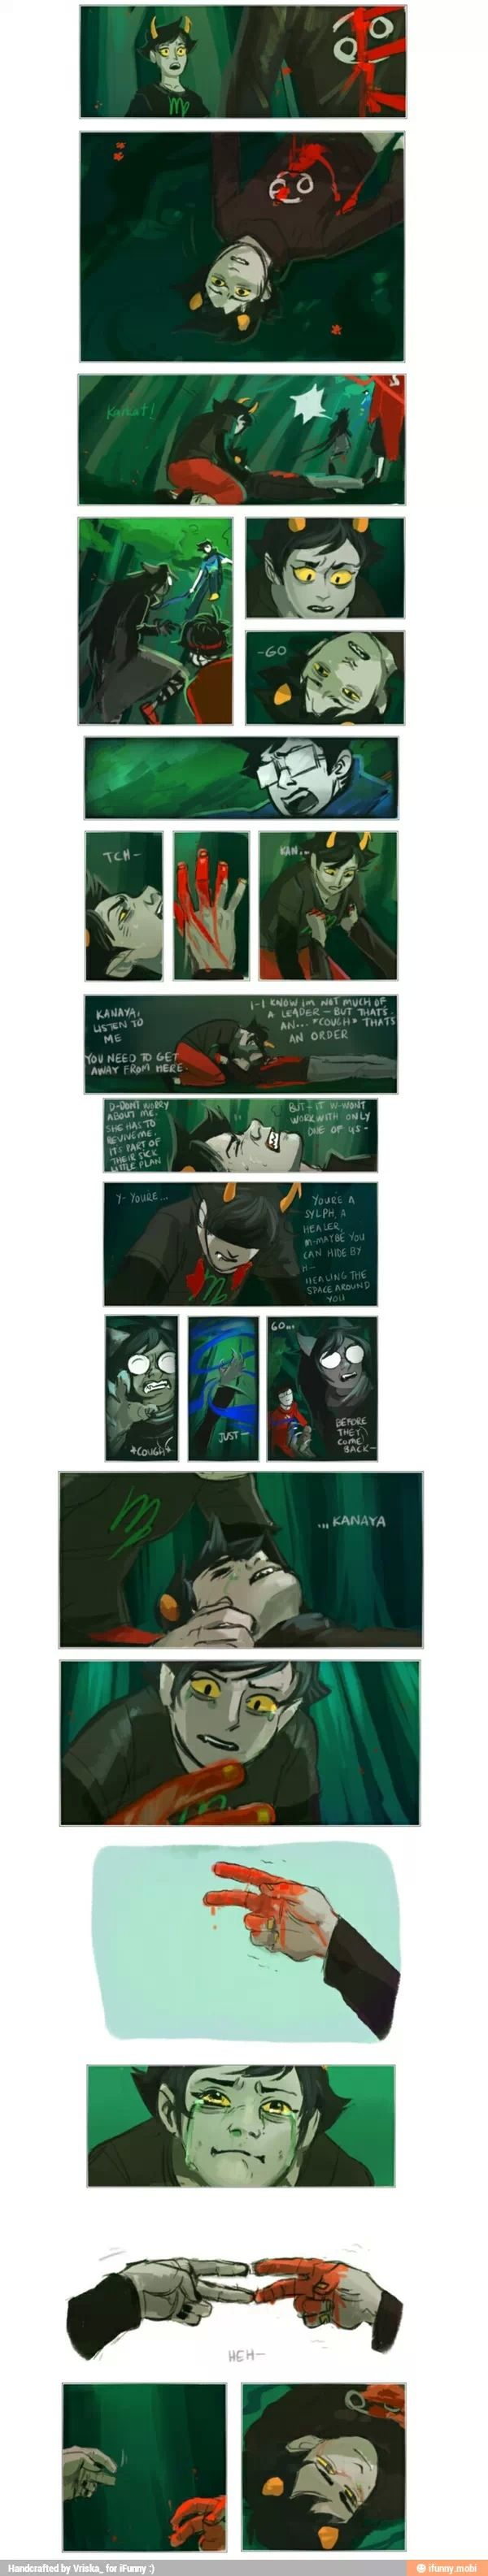 AAAAAAAAAAAAAA! Why, i know that he gets resurrected by Jane but its so frigging sad. especially because i'm a Virgo and my favorite character is Karkart. Also my friend is a Cancer. Why feels just why ;n; I'm just going to go cry my heart out now.  *Edit : Sorry if I spoiled anything for you guys. If I did I'm very sorry please don't hate me.*